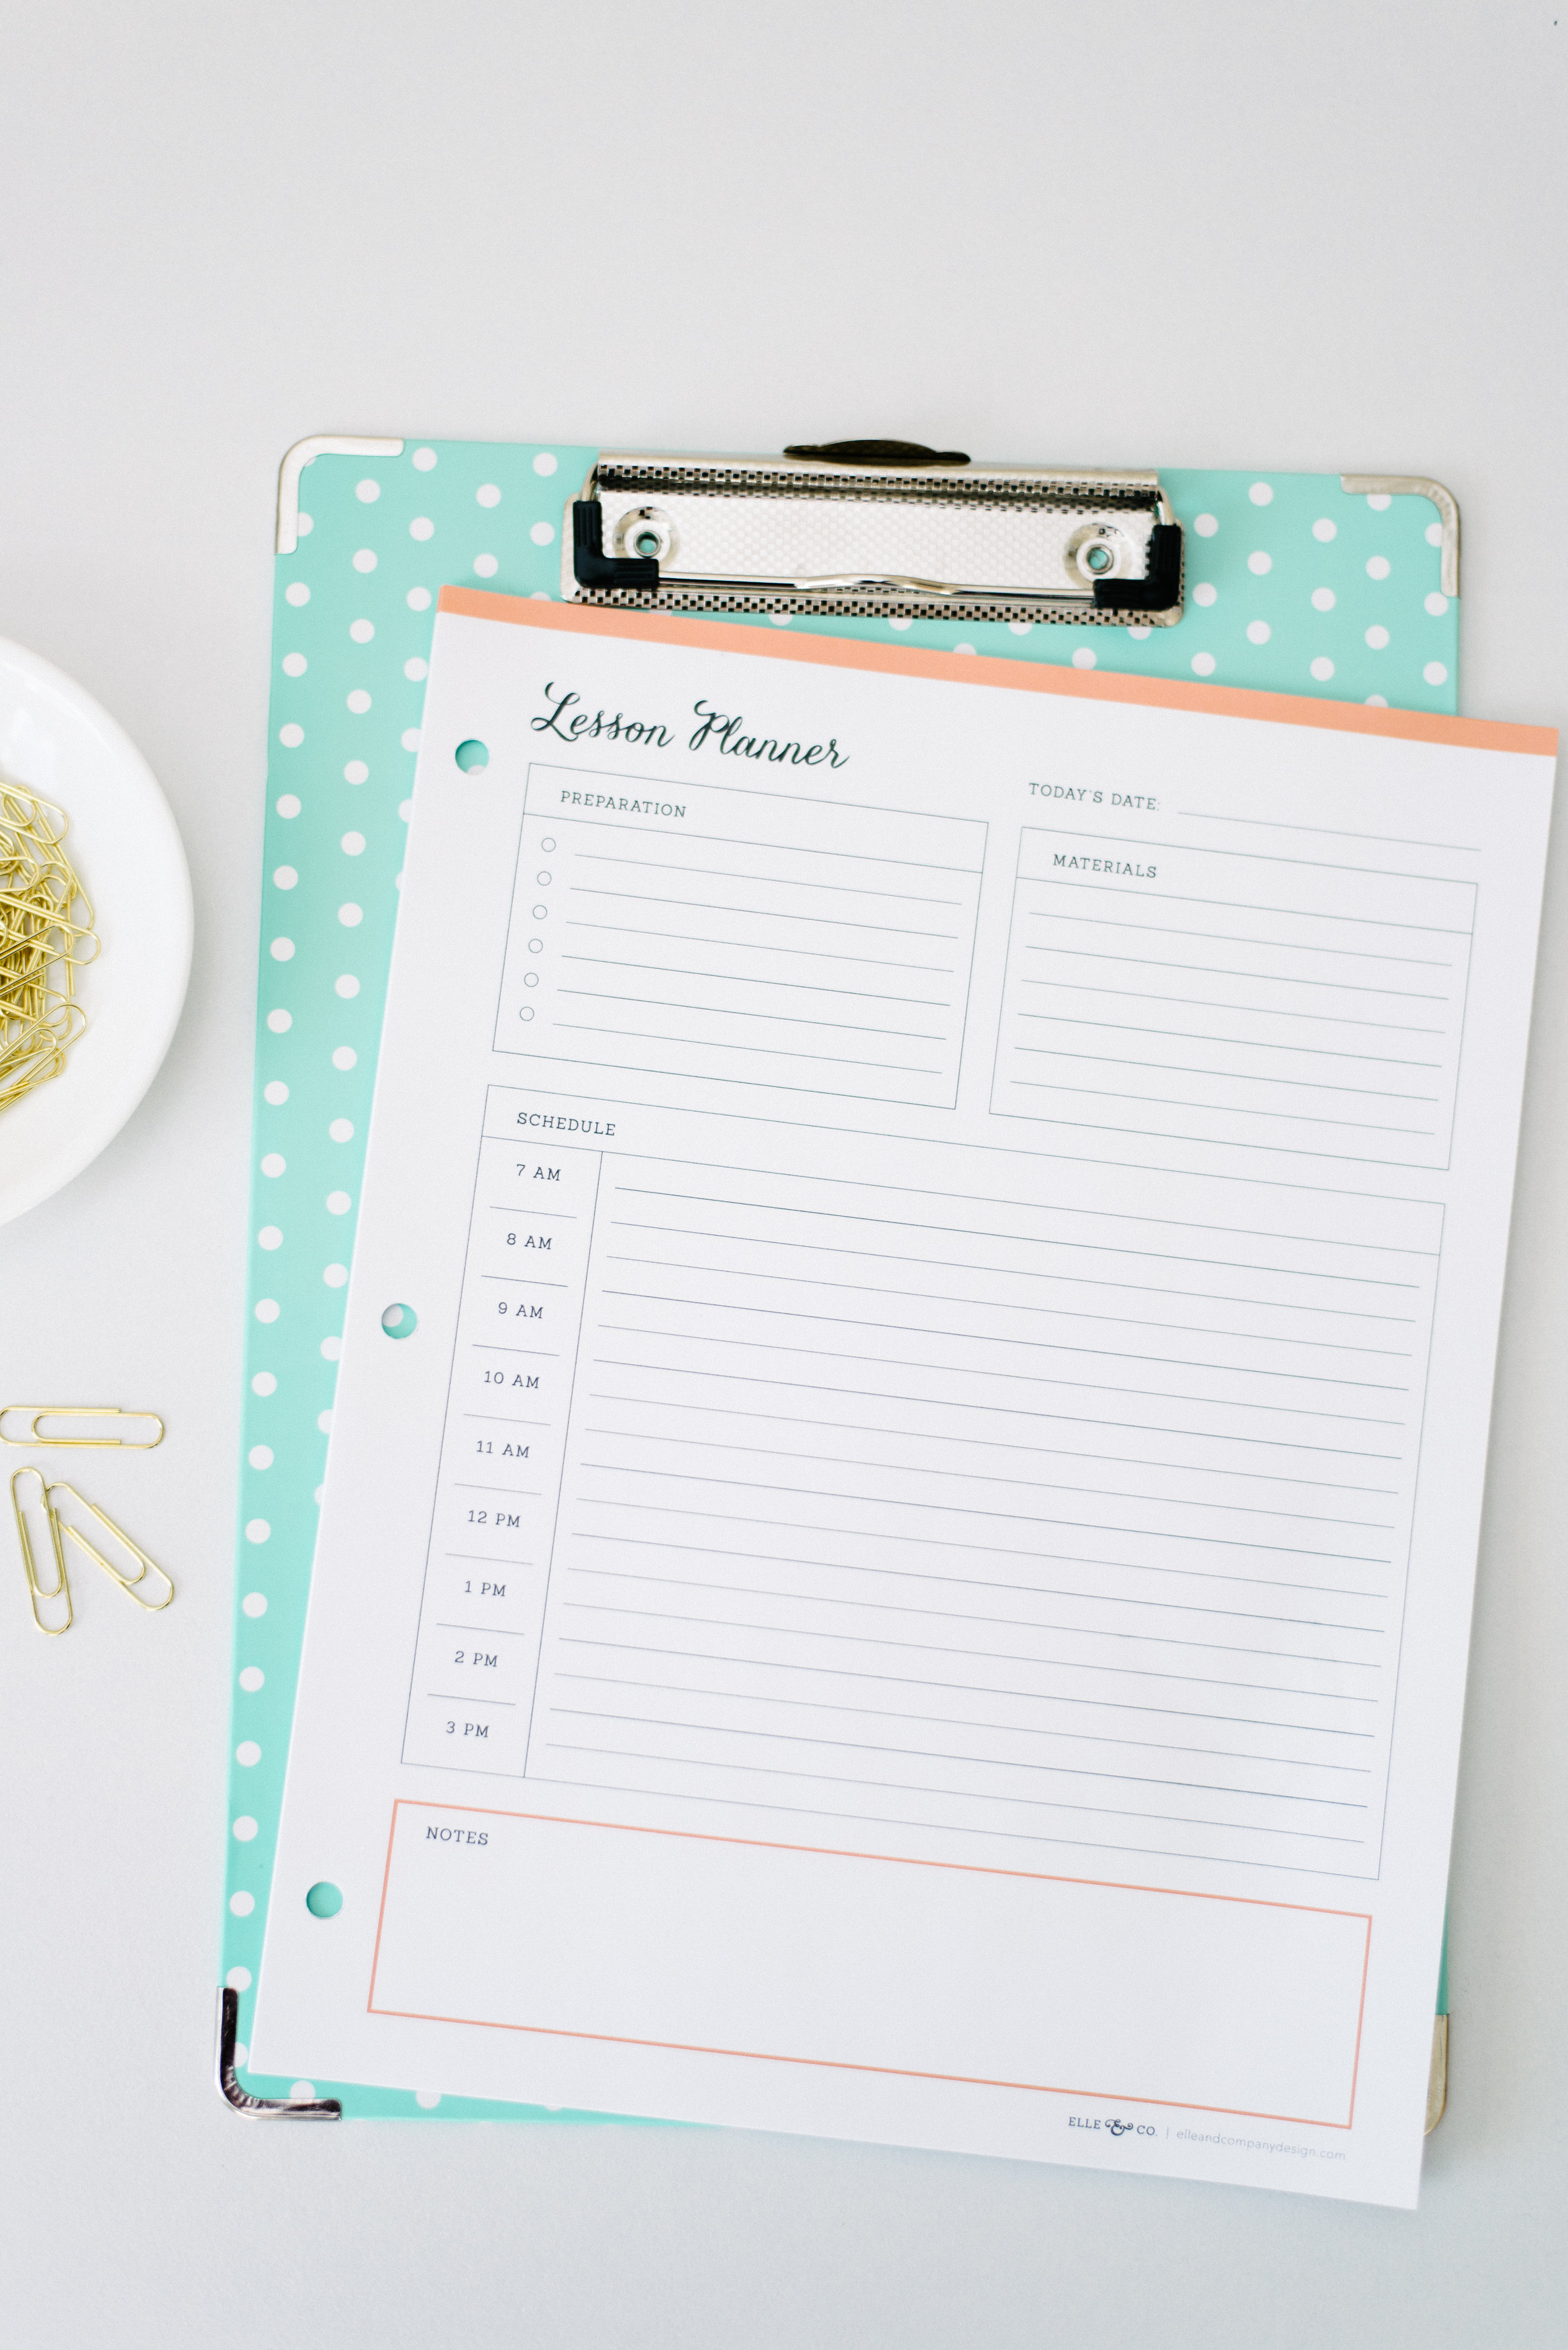 Printable lesson planner - perfect for teachers and homeschool mommas! // Elle & Company